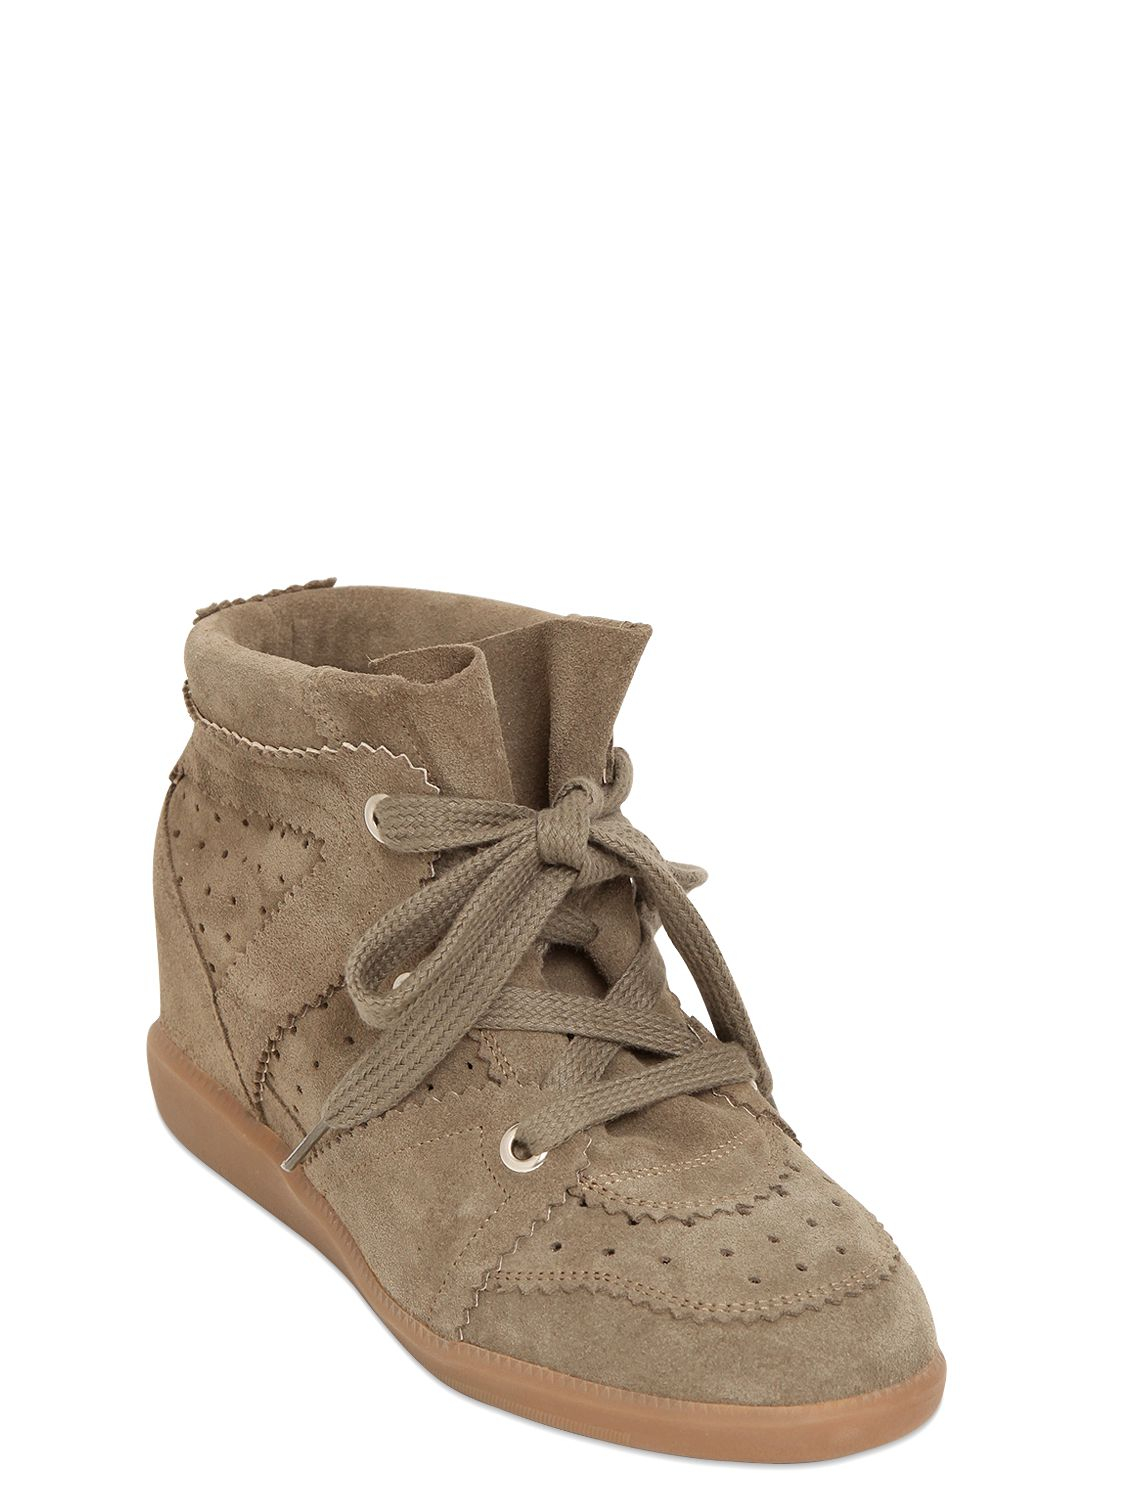 7caad547171 Gallery. Previously sold at  LUISA VIA ROMA · Women s Wedge Sneakers  Women s Isabel Marant Bobby ...